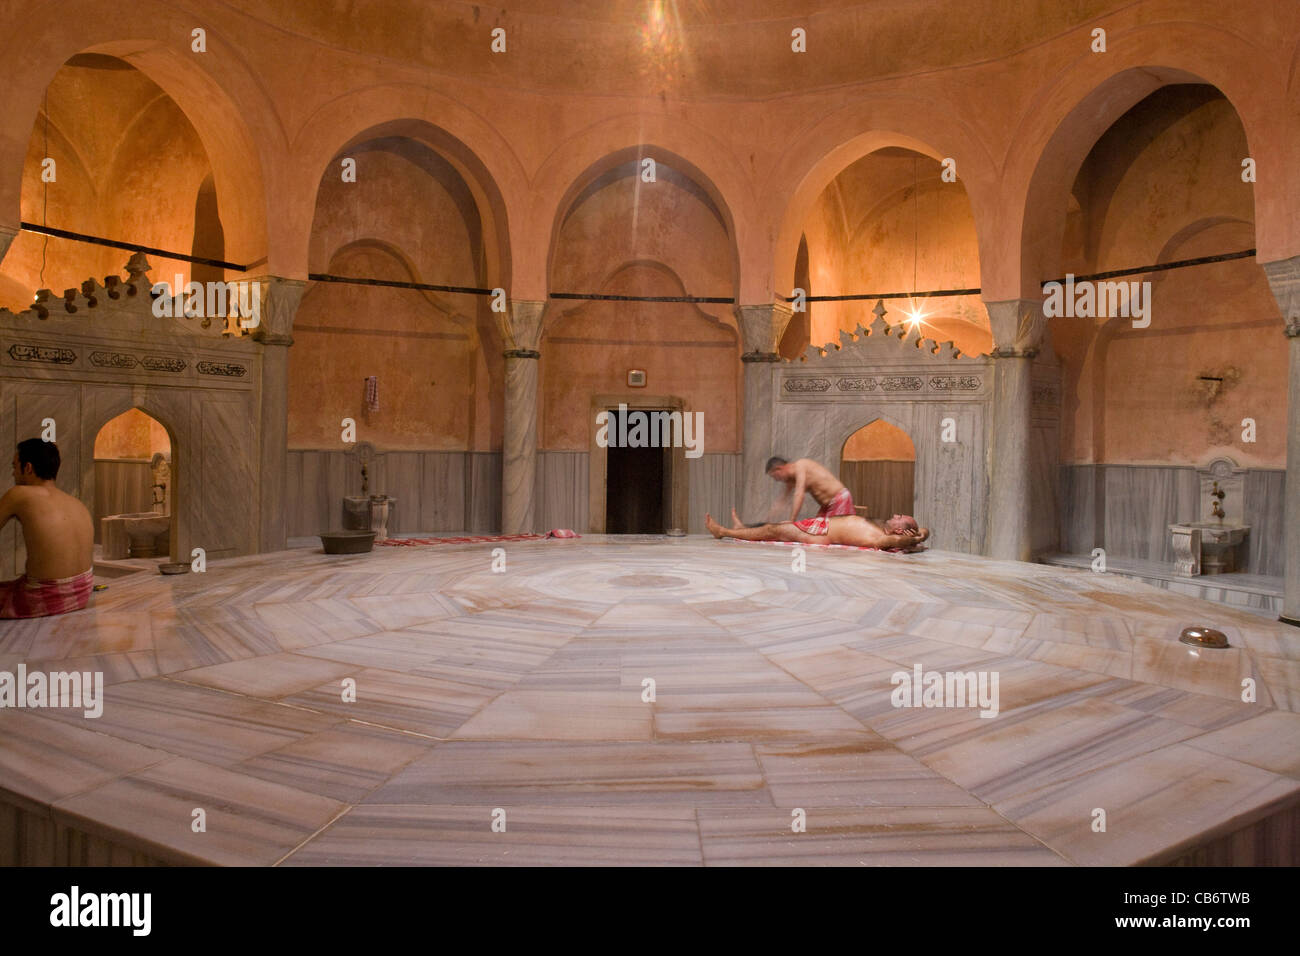 istanbul cemberlitas turkish baths hamam stock photo royalty free image 41333191 alamy. Black Bedroom Furniture Sets. Home Design Ideas